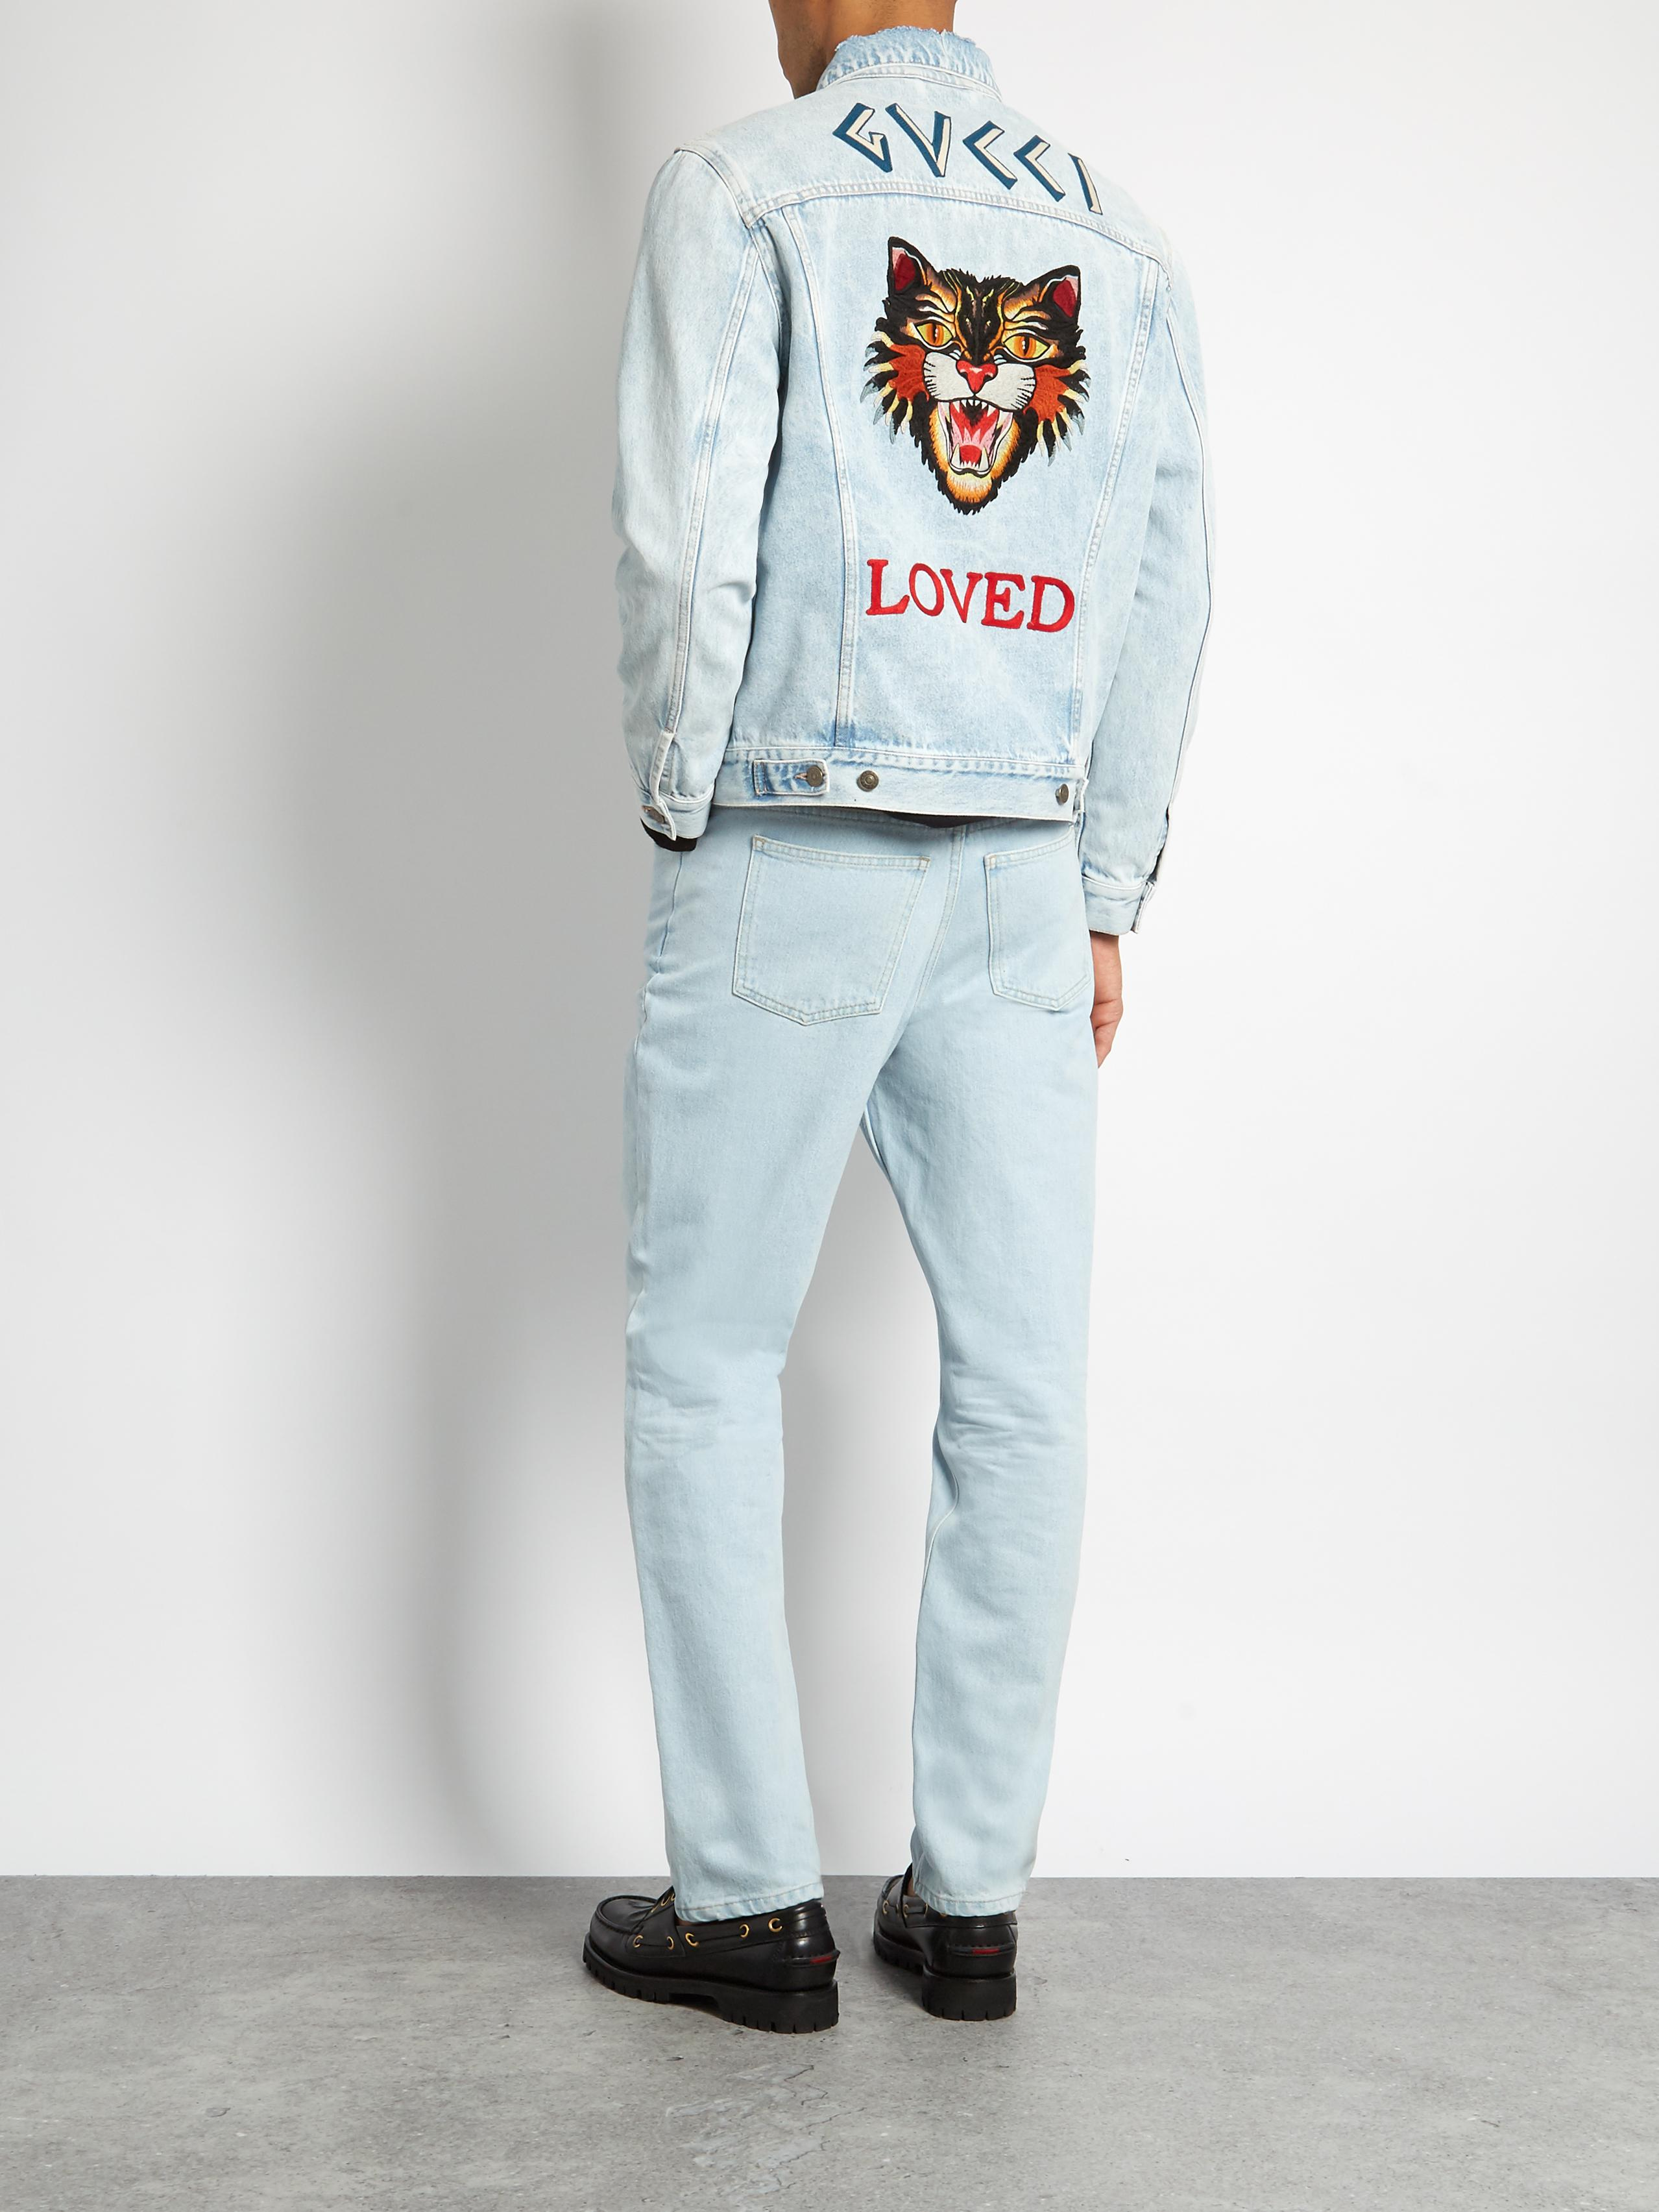 Gucci Loved Embroidered Denim Jacket In Blue For Men Lyst